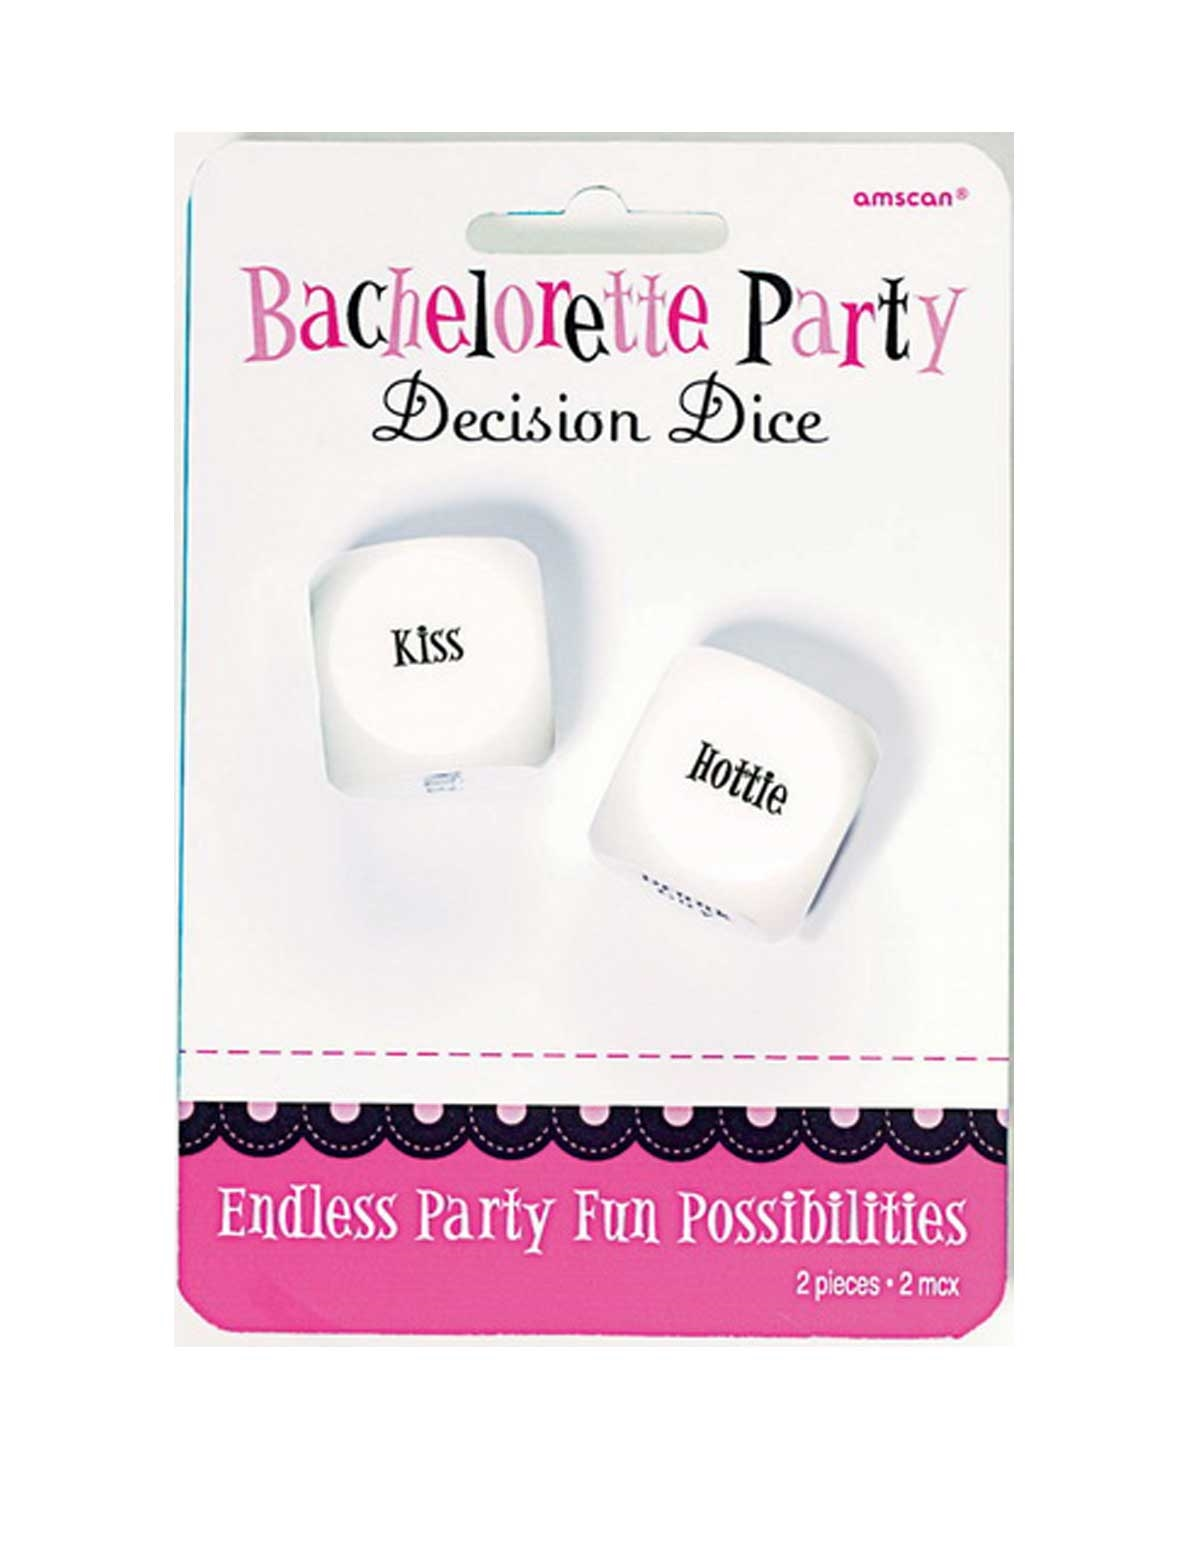 Bachelorette Party Decision Dice